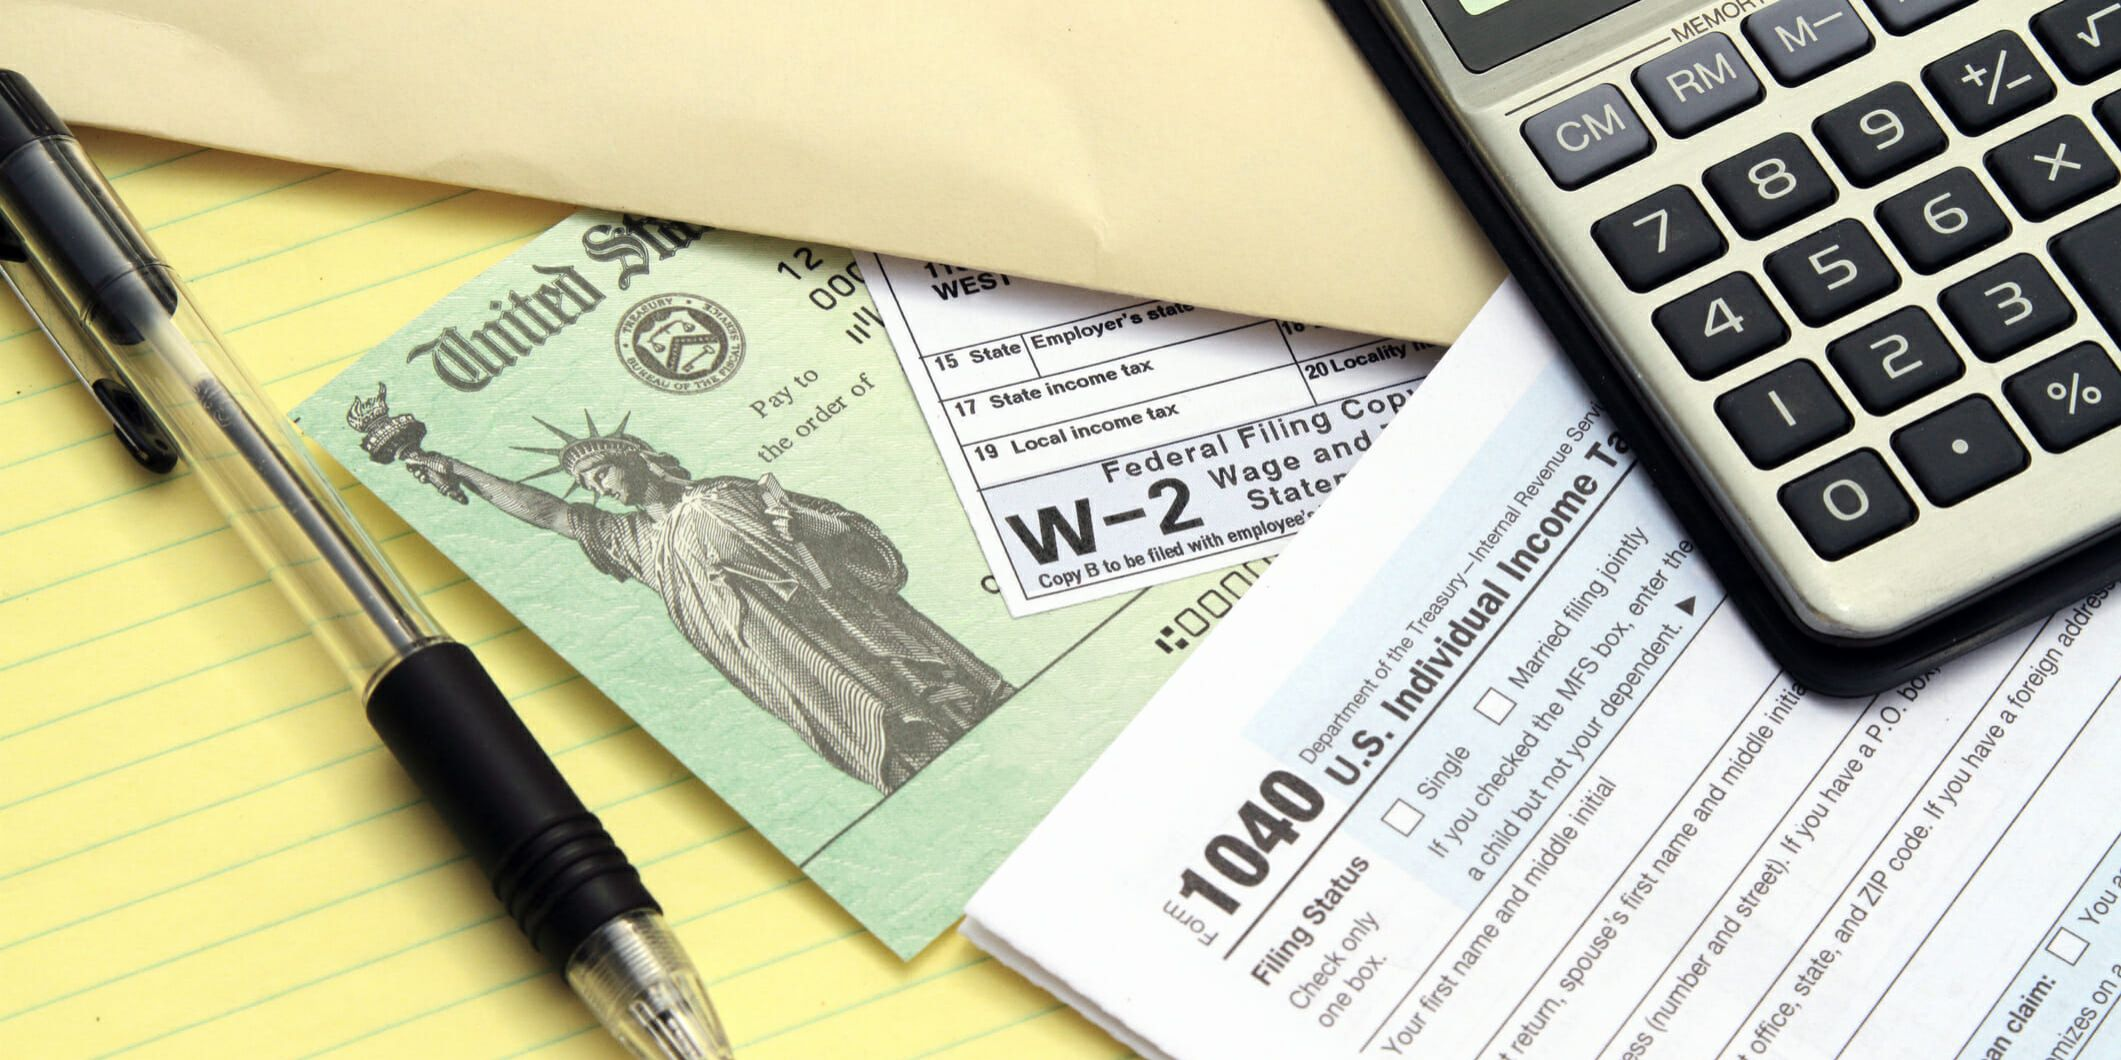 Tax forms with Treasury check. IRS tax forms 1040 and W-2. Tax preparation concept. Treasury check represents a tax refund. Calculator, pen and papers yellow note pad also visible.